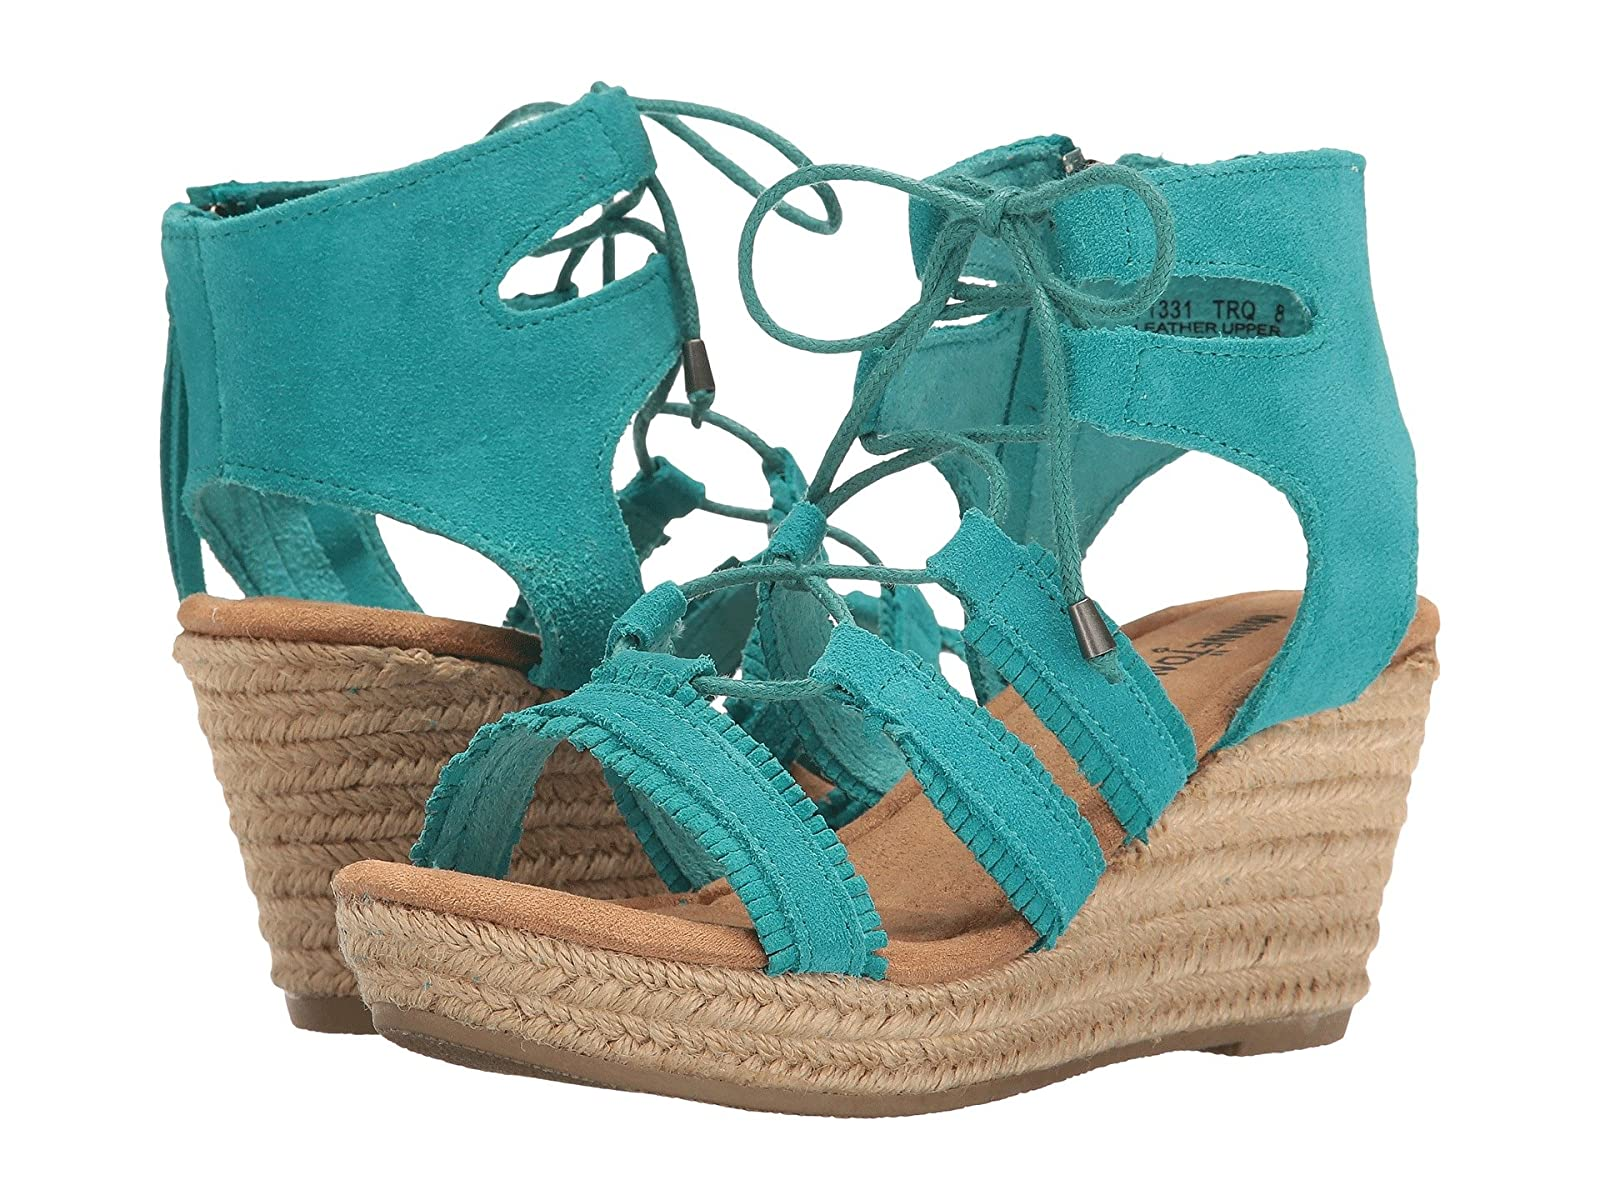 Minnetonka LeightonCheap and distinctive eye-catching shoes